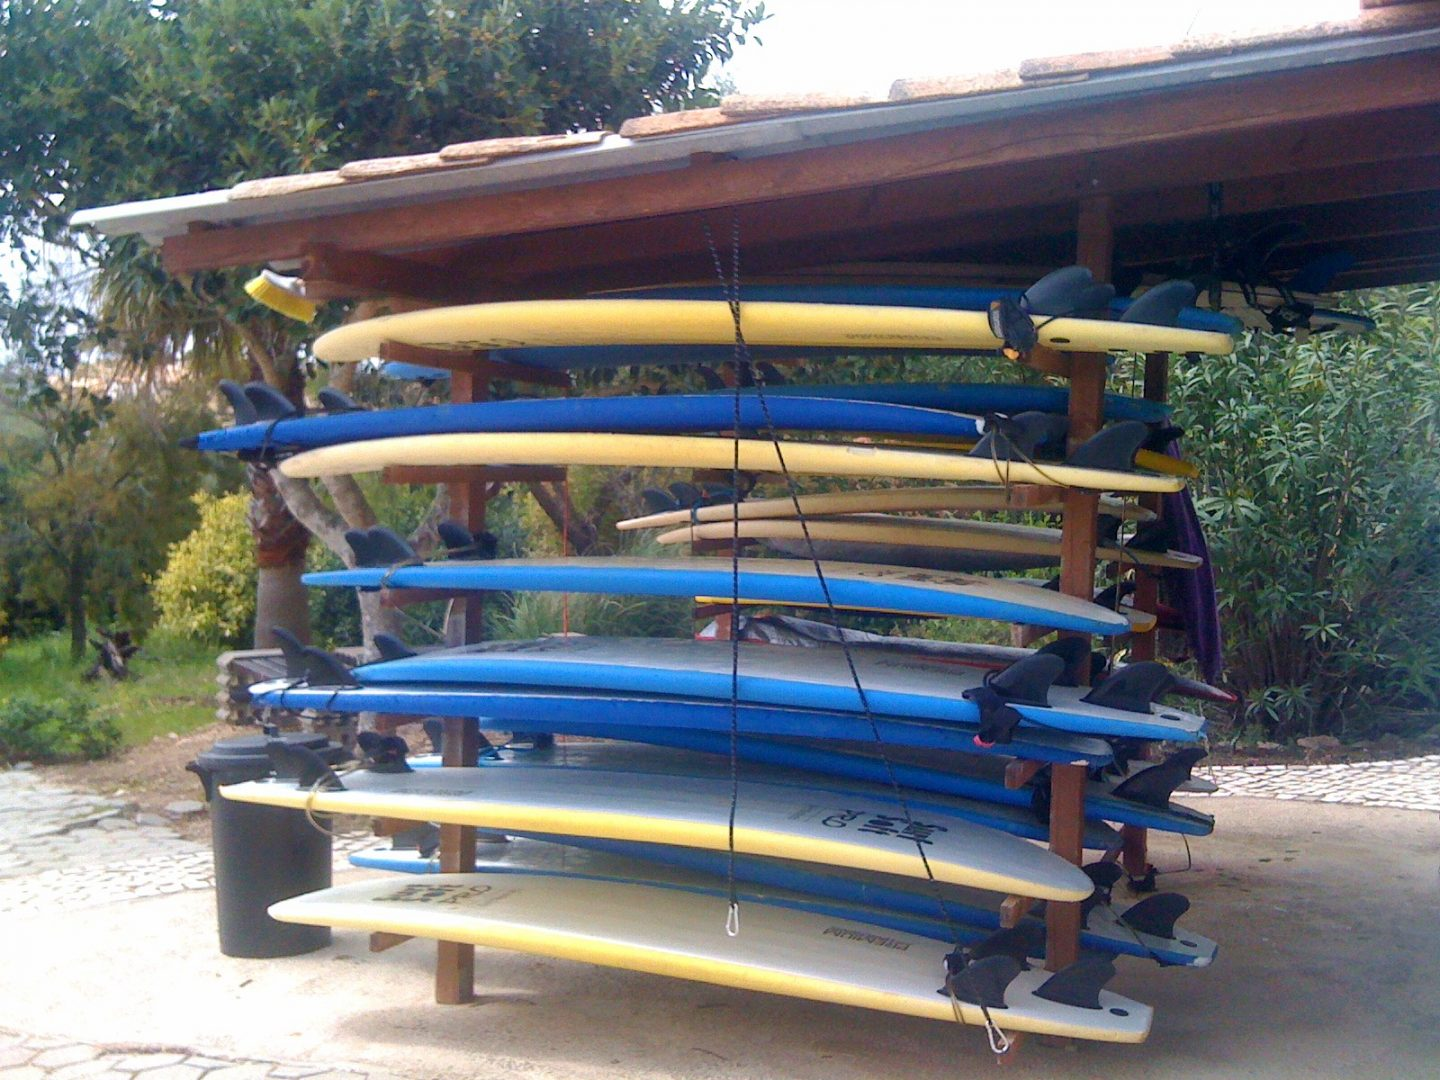 Getting the boards